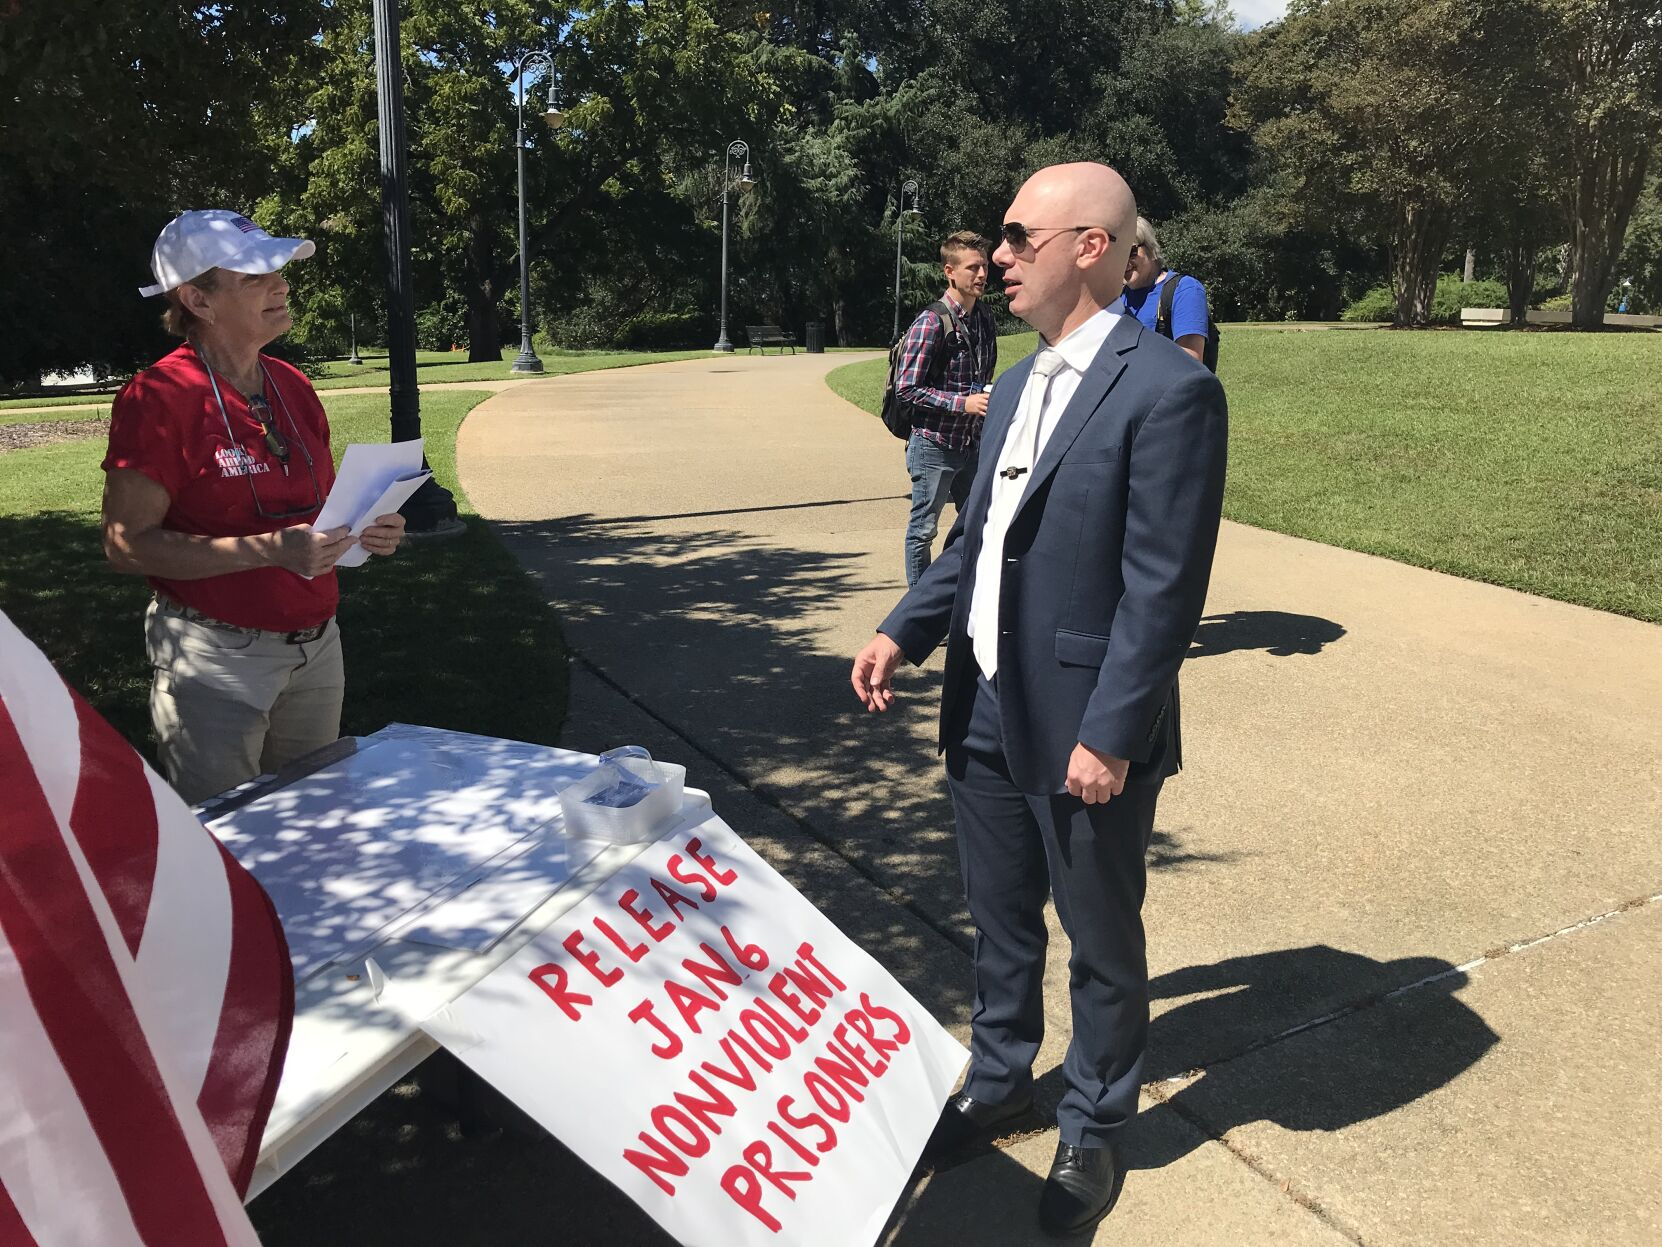 Georgetown native, architect of national 'Justice for J6' rallies, speaks at home state rally